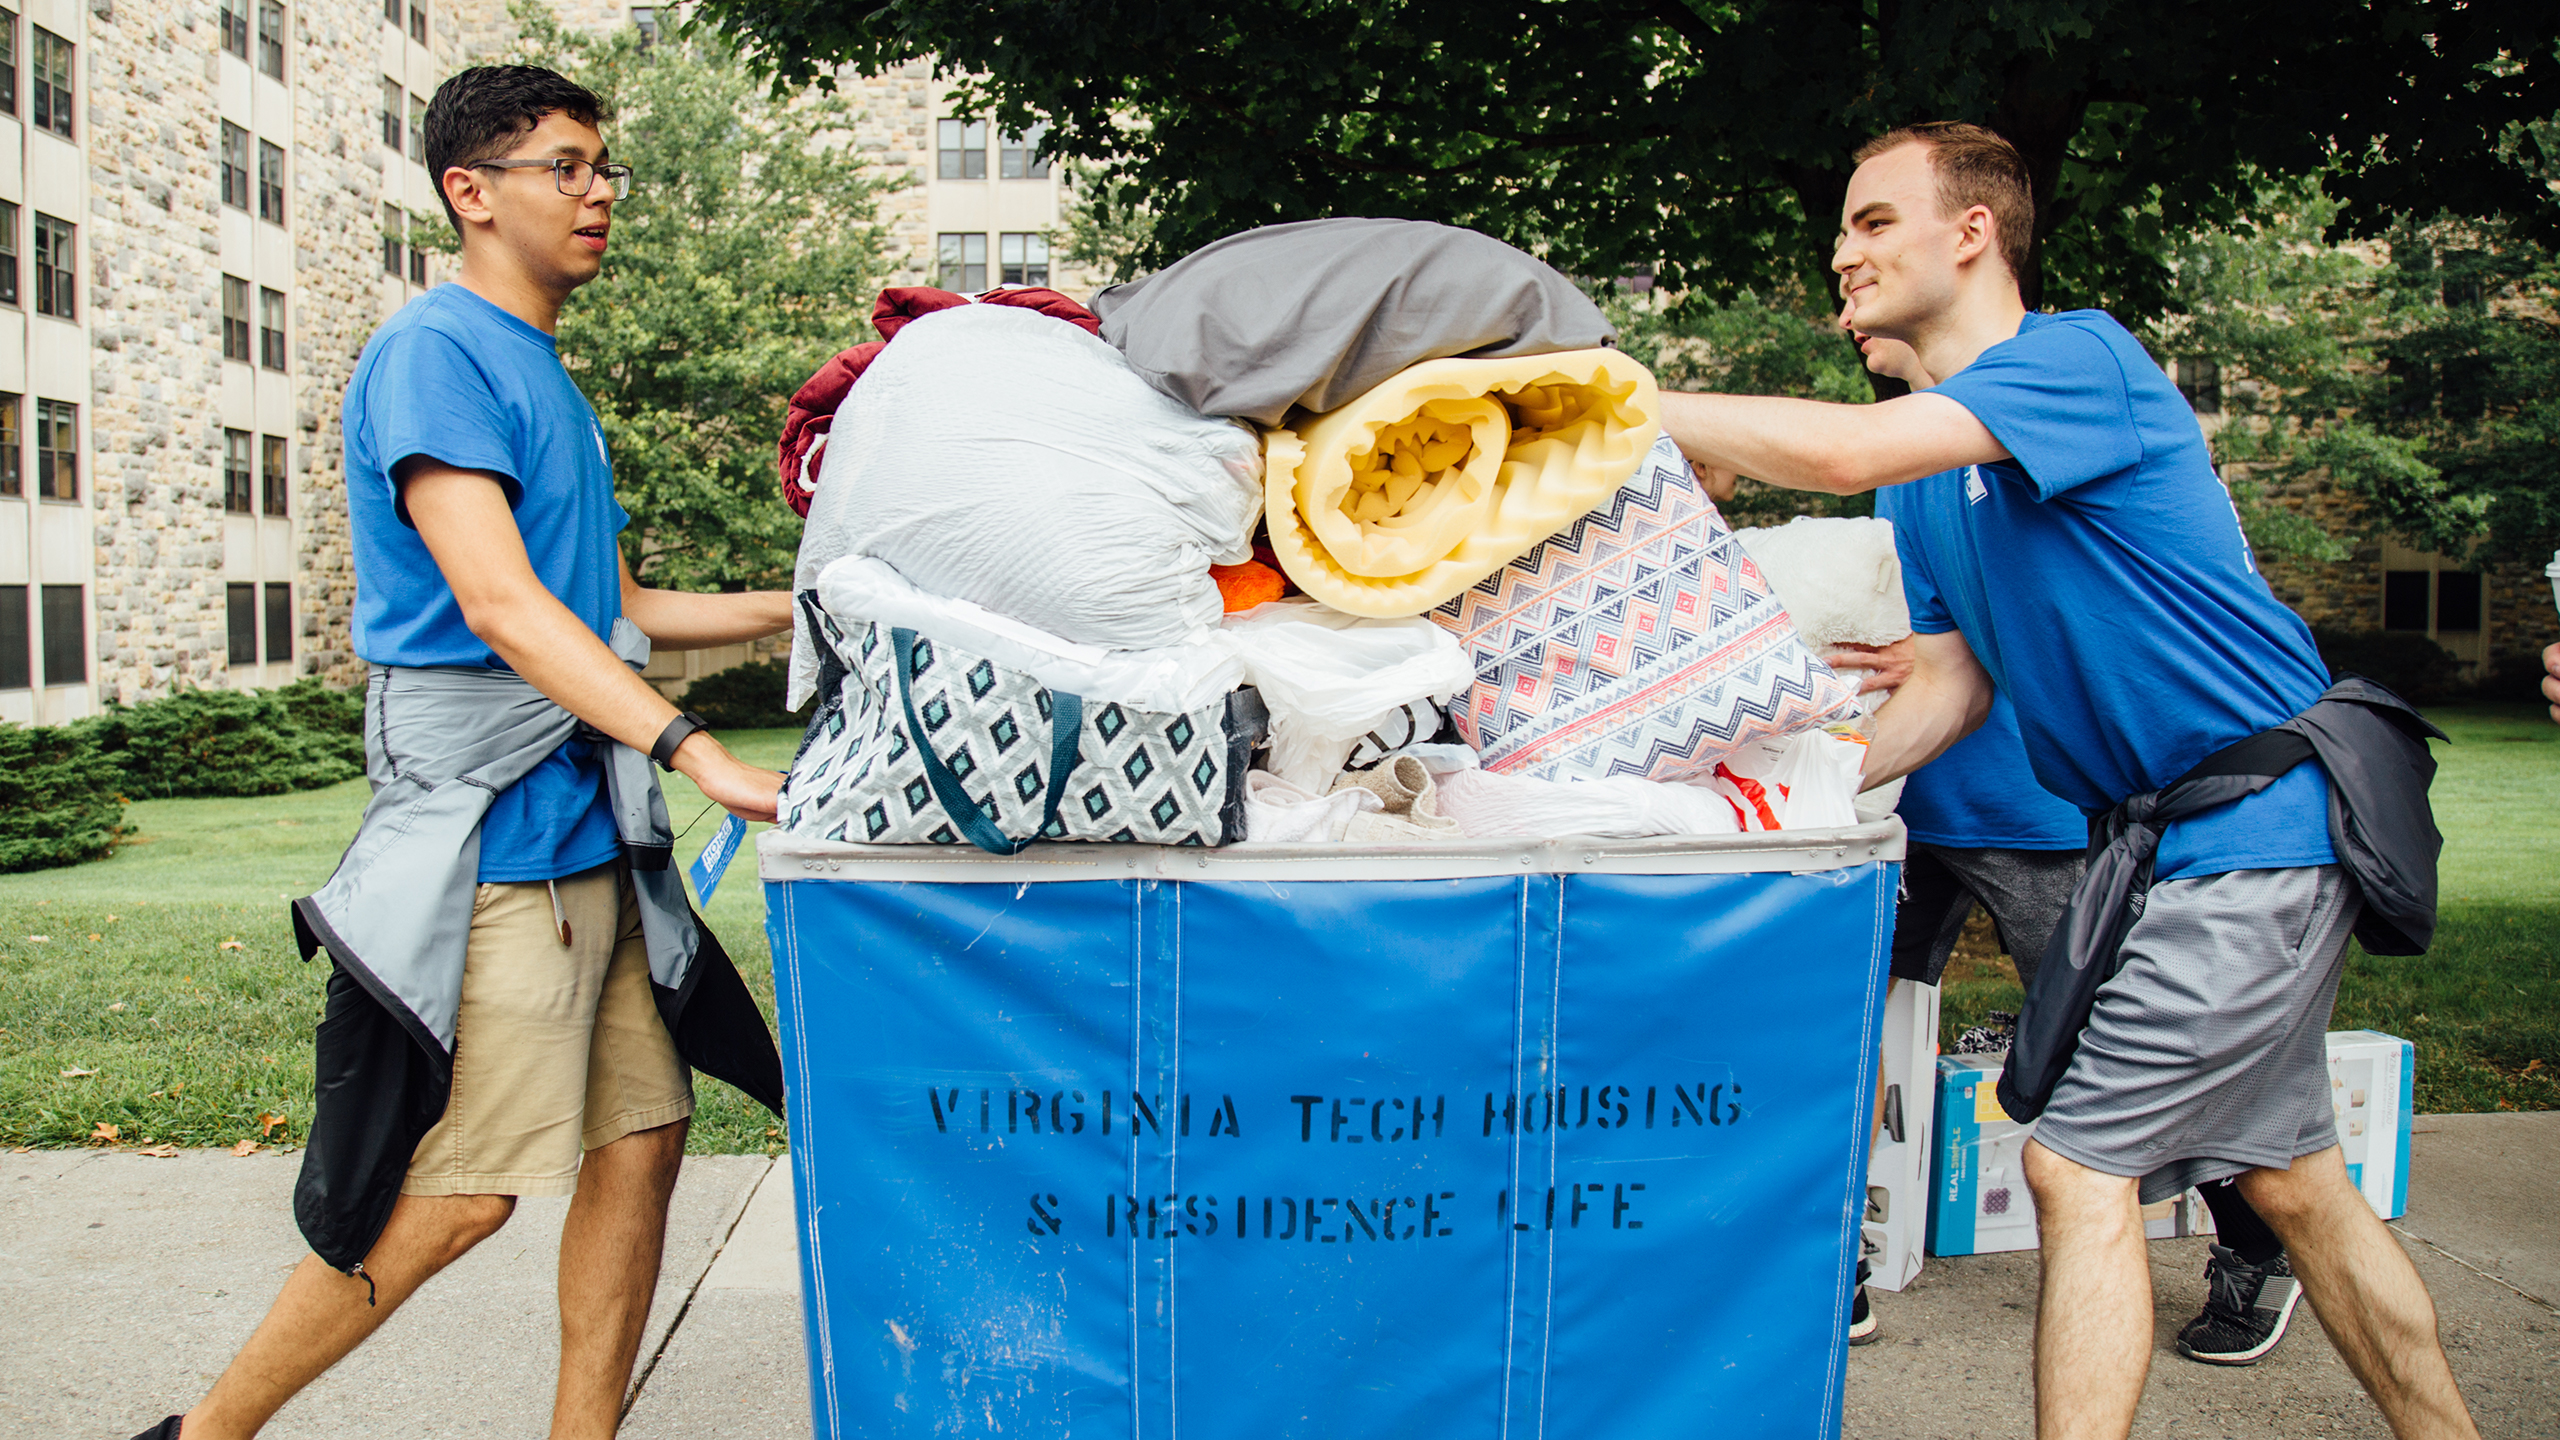 Two helpers push a cart as part of move in day at Virginia Tech